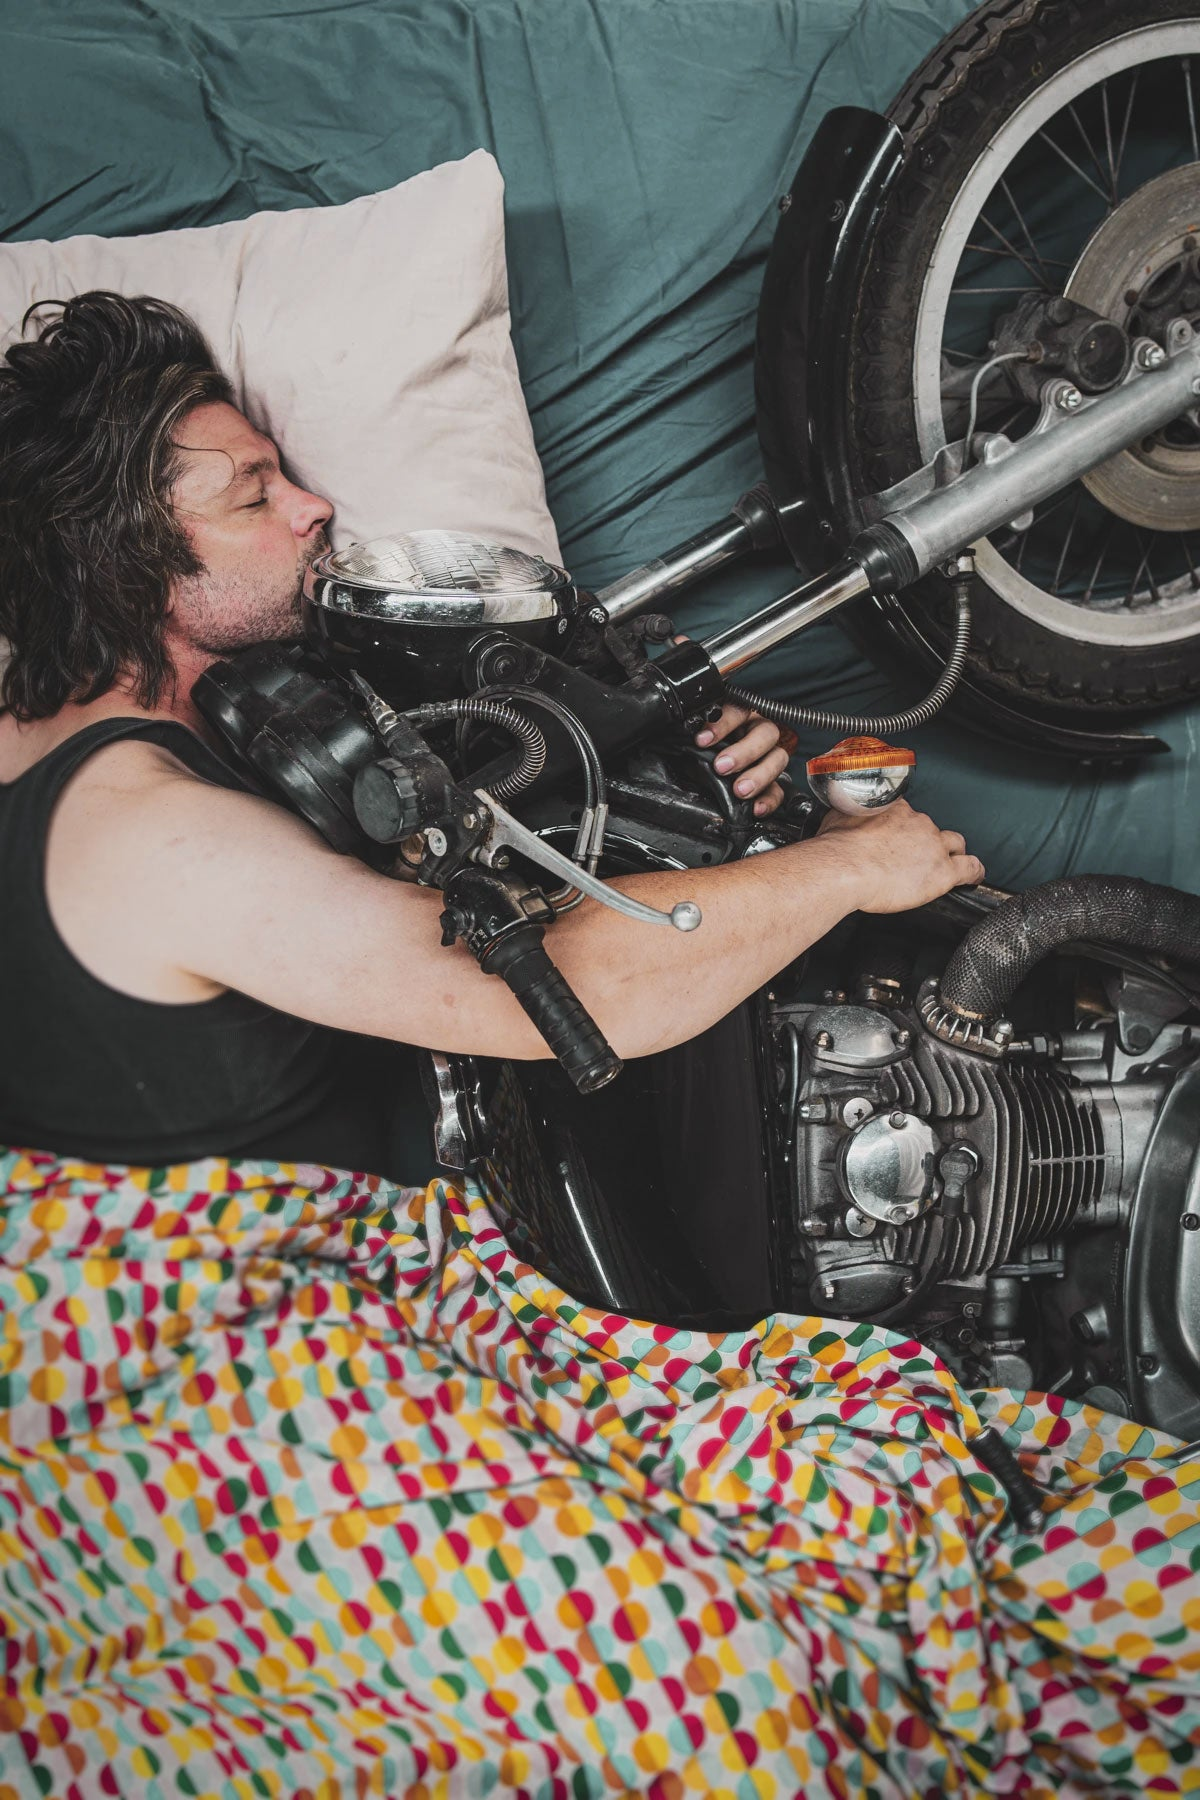 Bedtime Stories - Valentine's day with your motorcycle